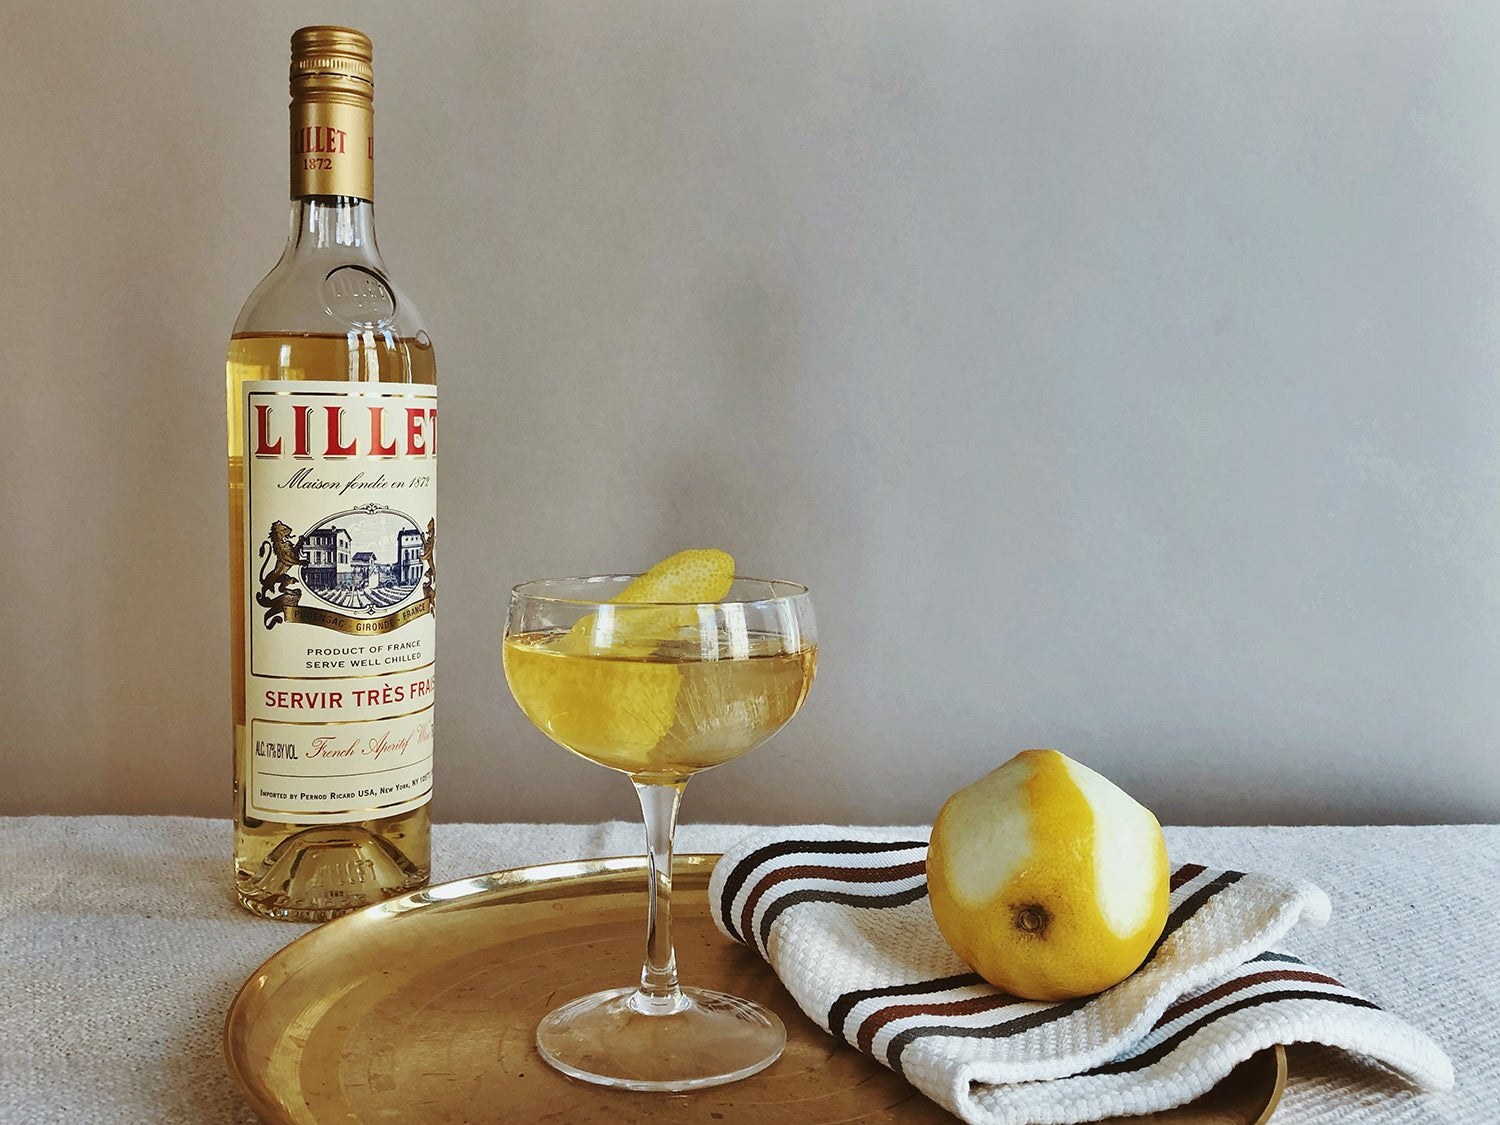 Lillet Vermouth on table with lemon